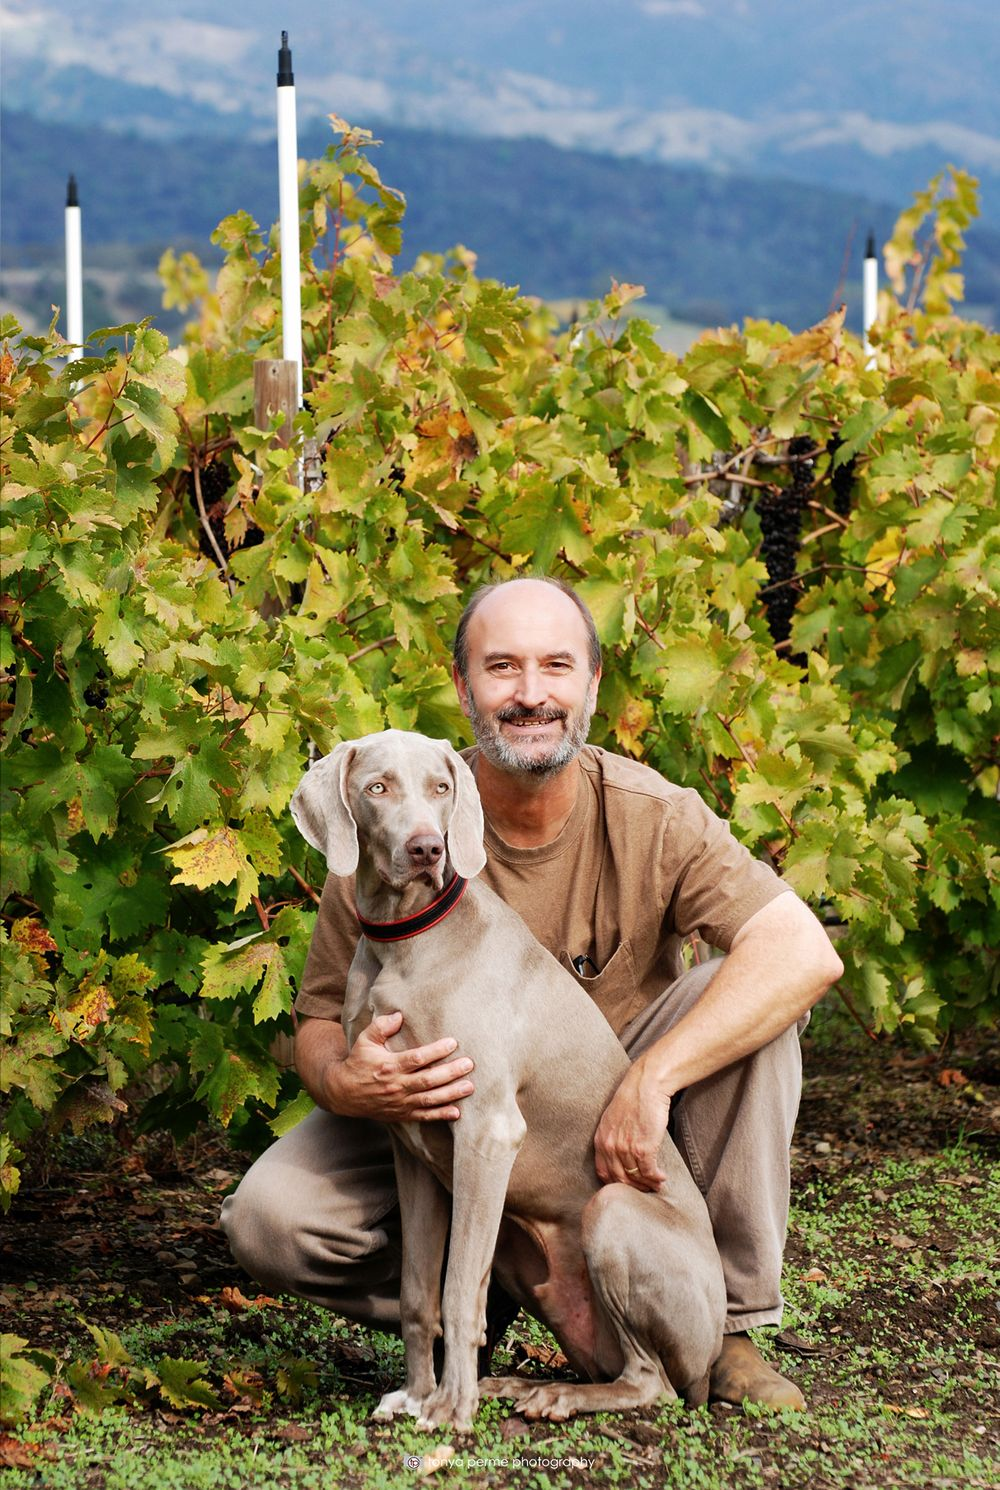 Weimaraner with man in front of California grapevines